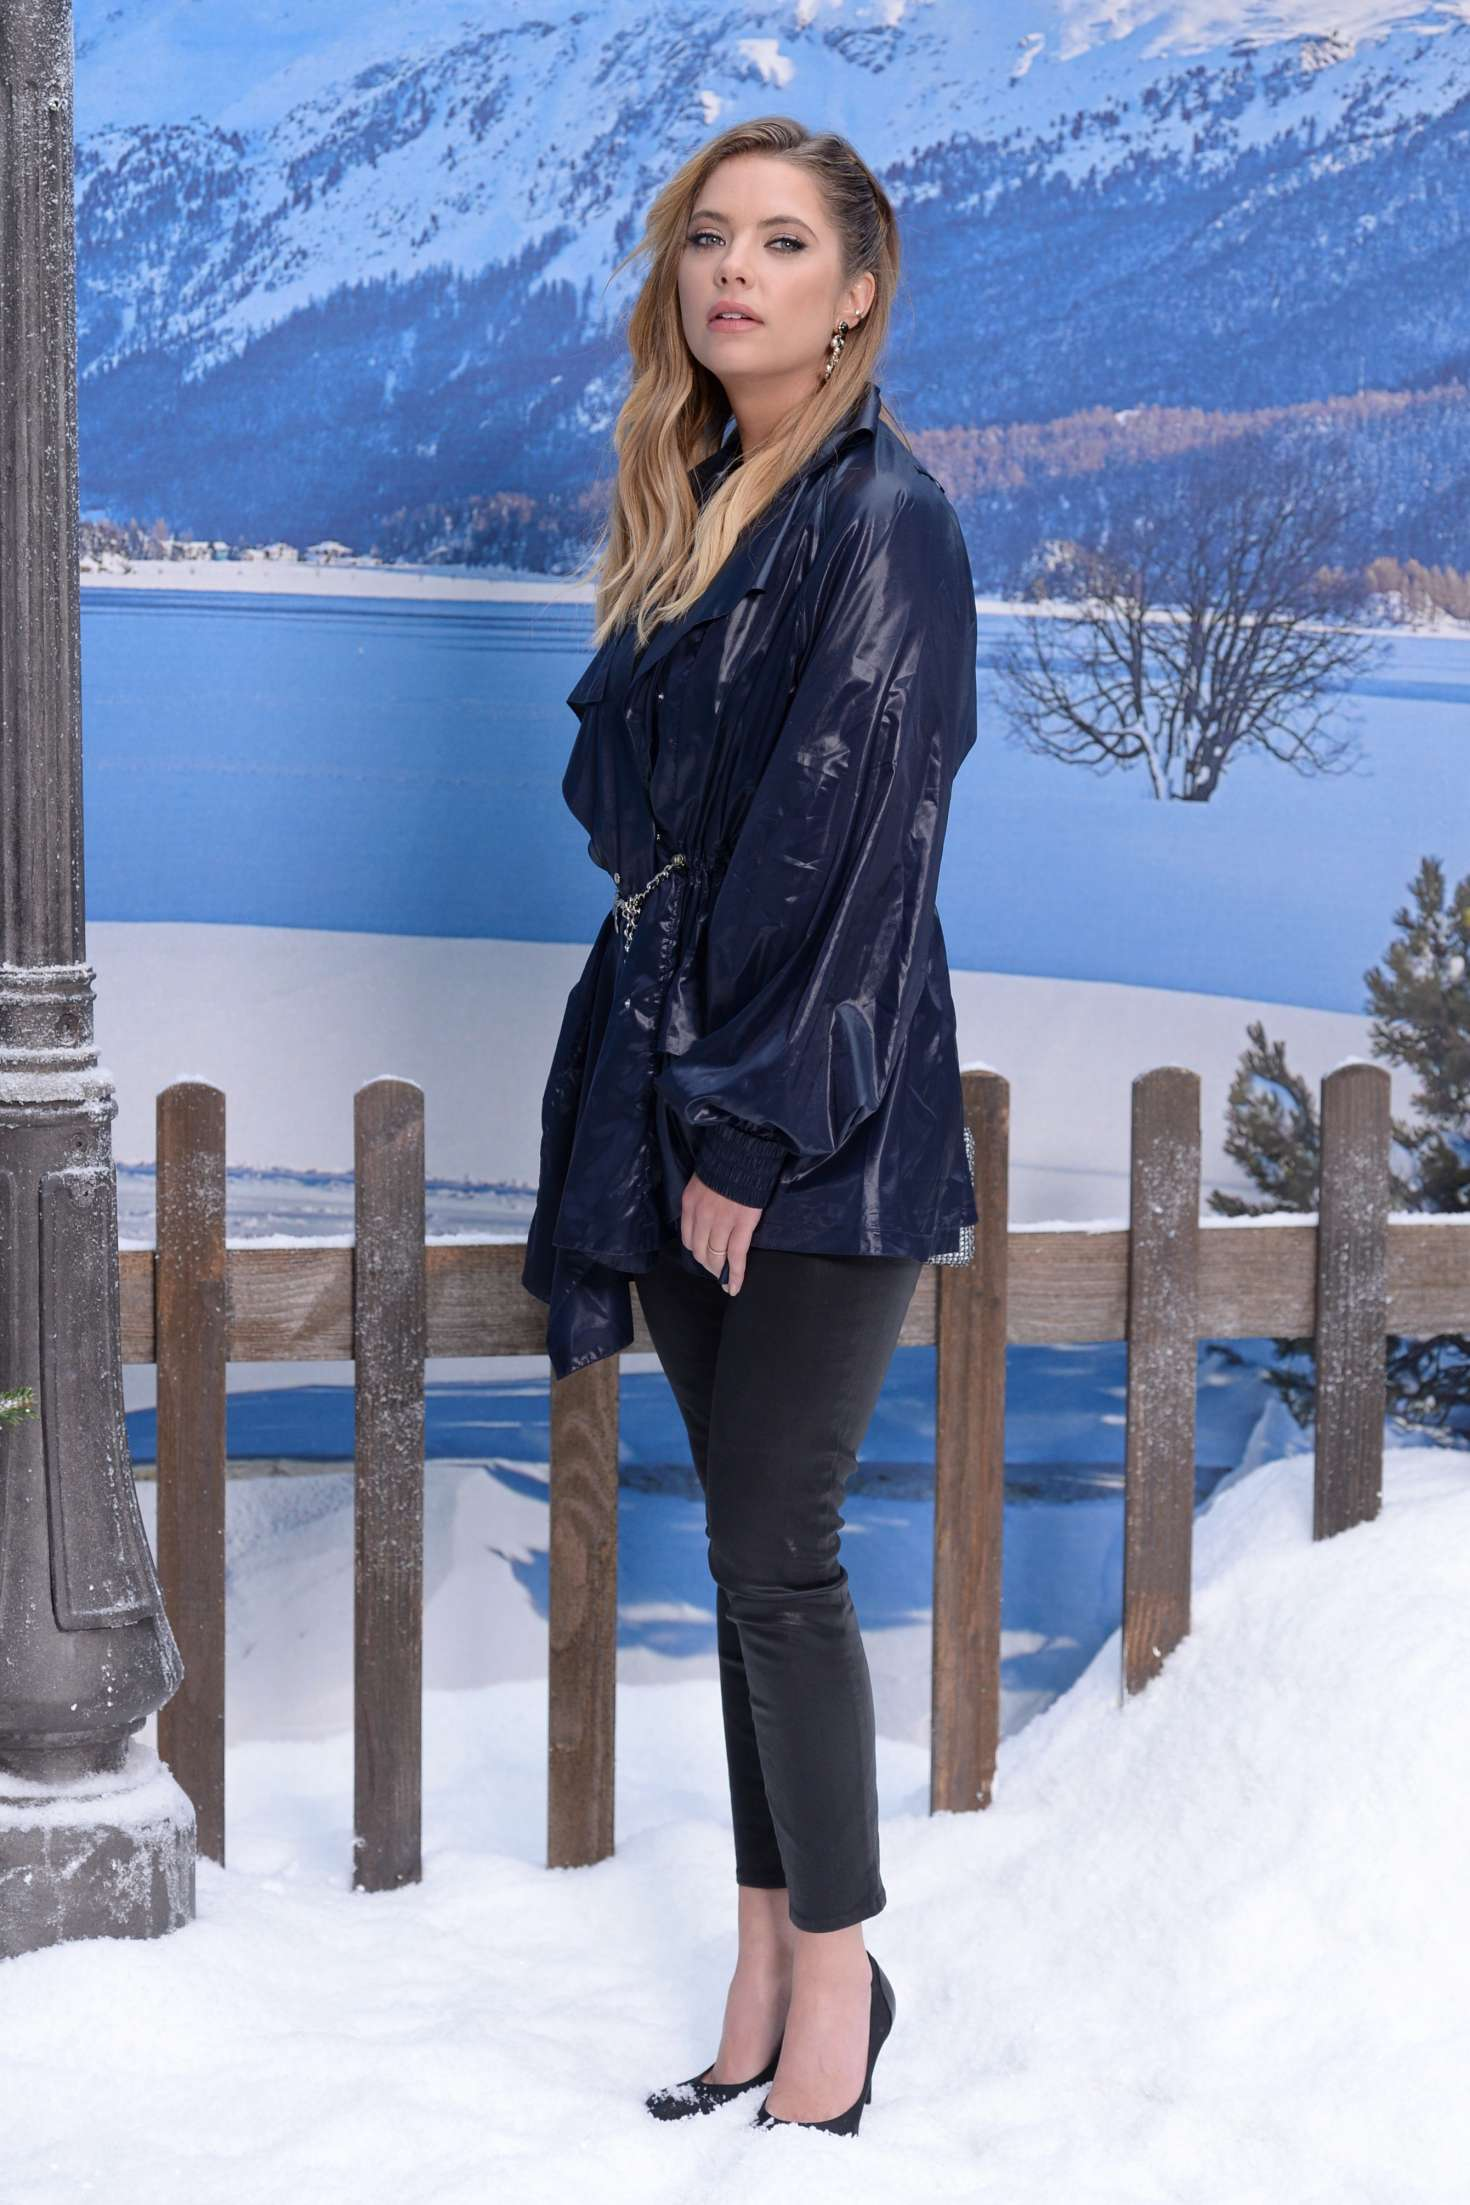 Ashley Benson in full height at the Chanel Fashion Show, 2019